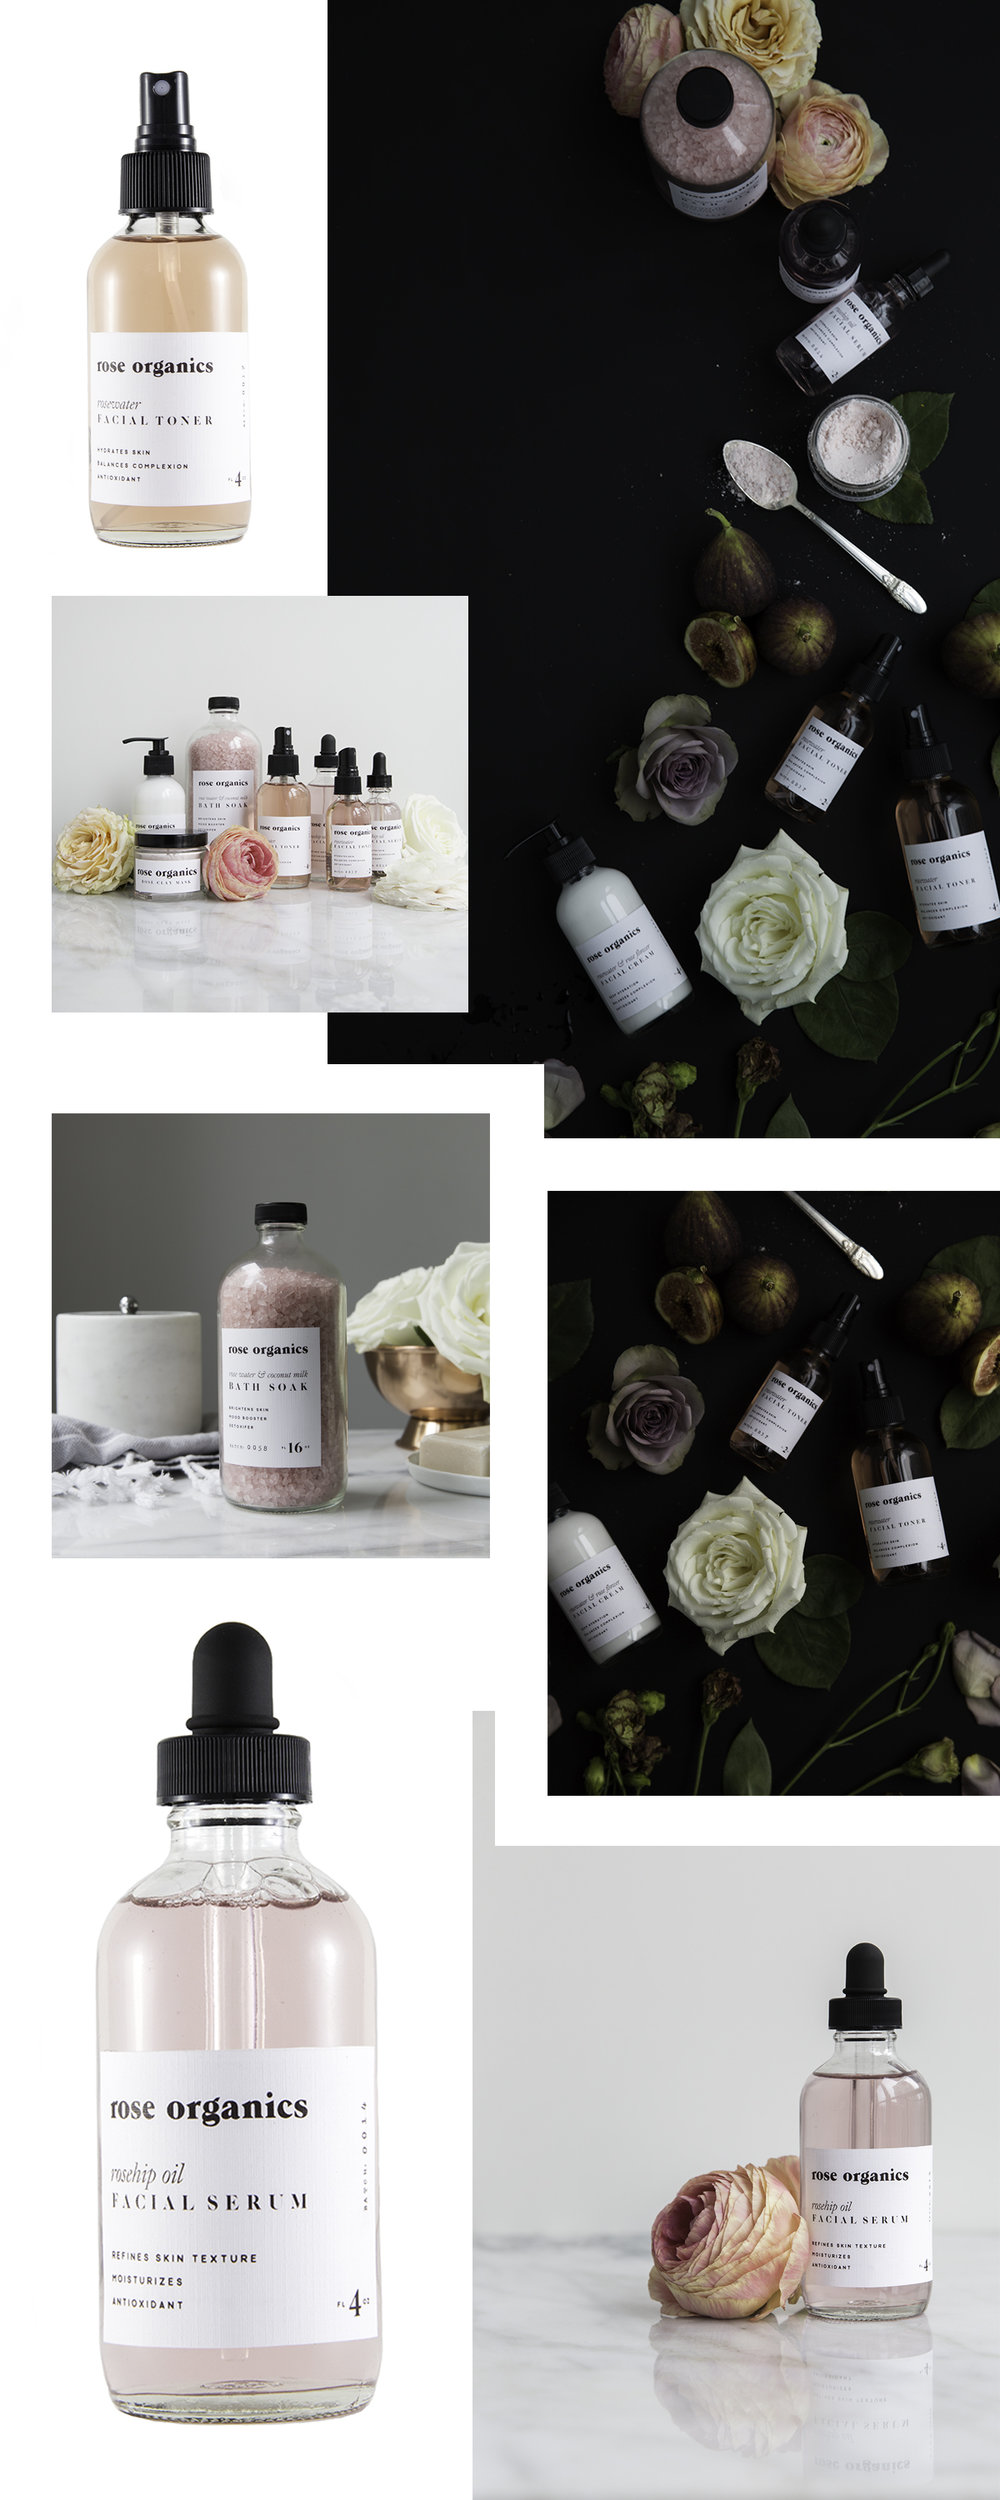 Lauren Miller Product Photographer Toronto Rose Organics.jpg